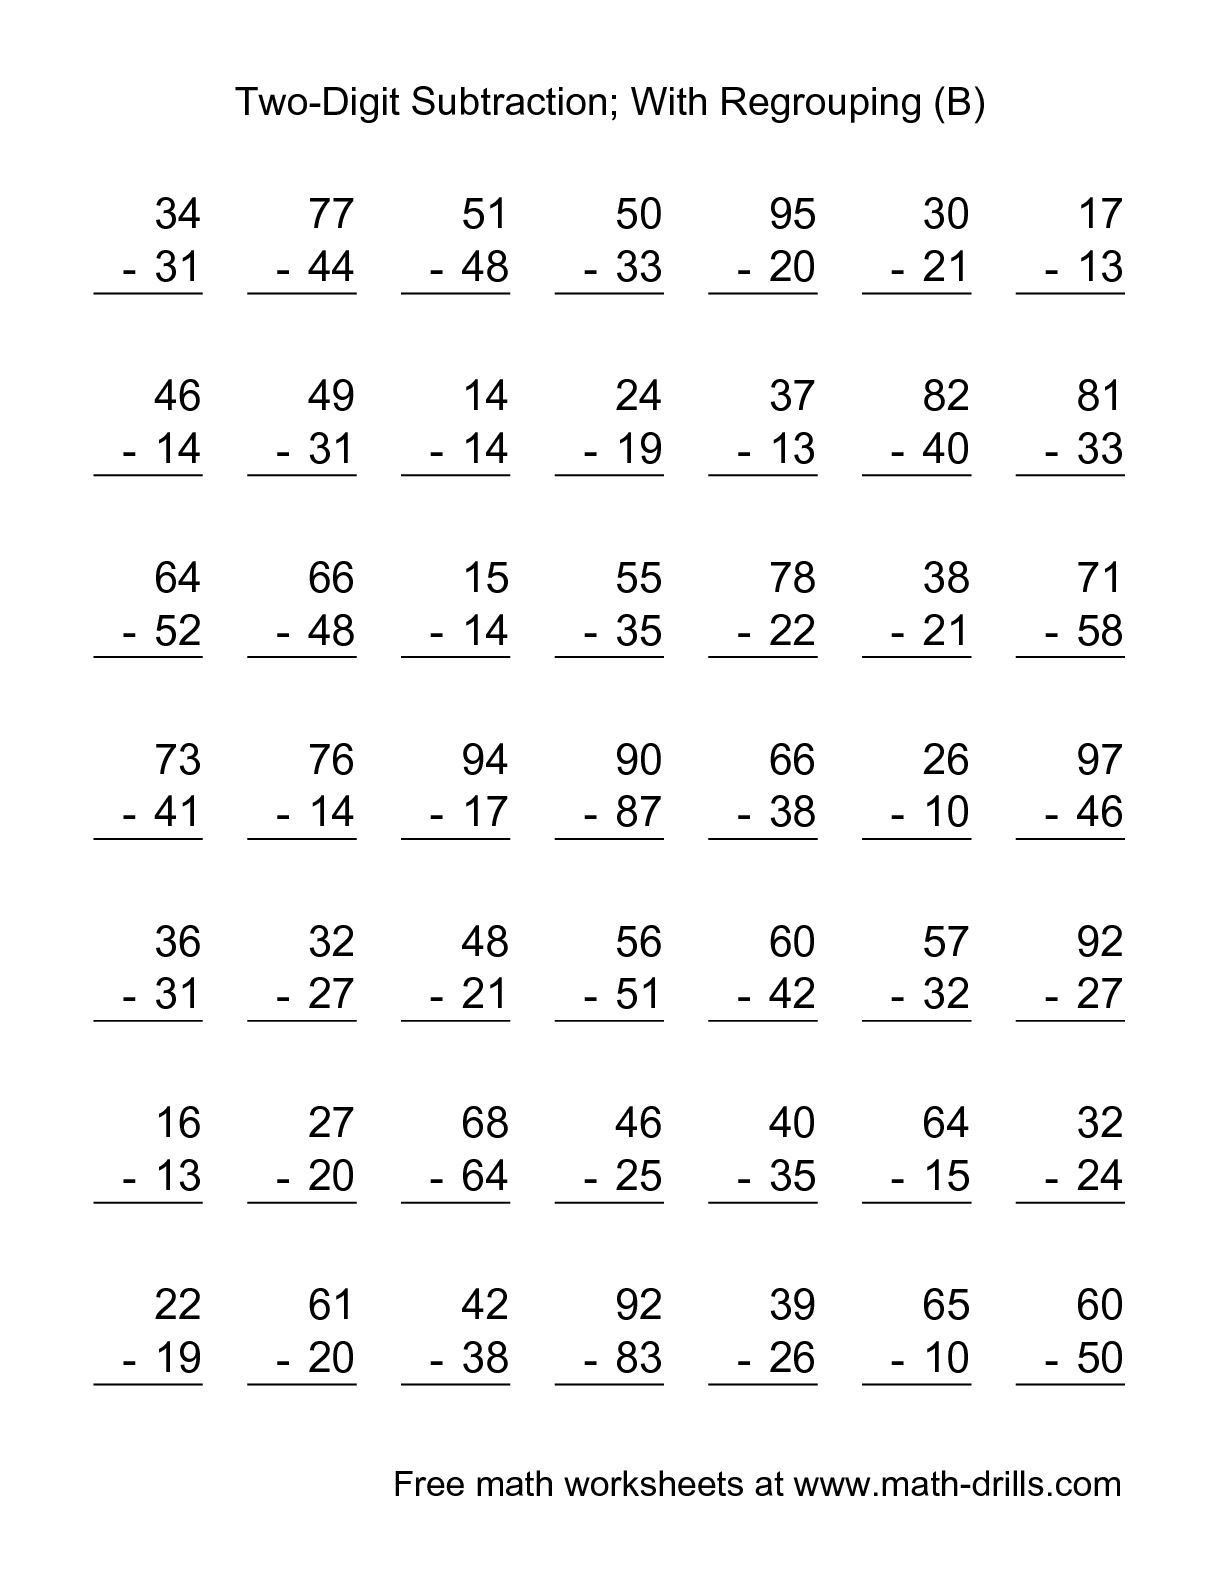 5 Periodic Subtraction Borrowing Worksheets Subtraction